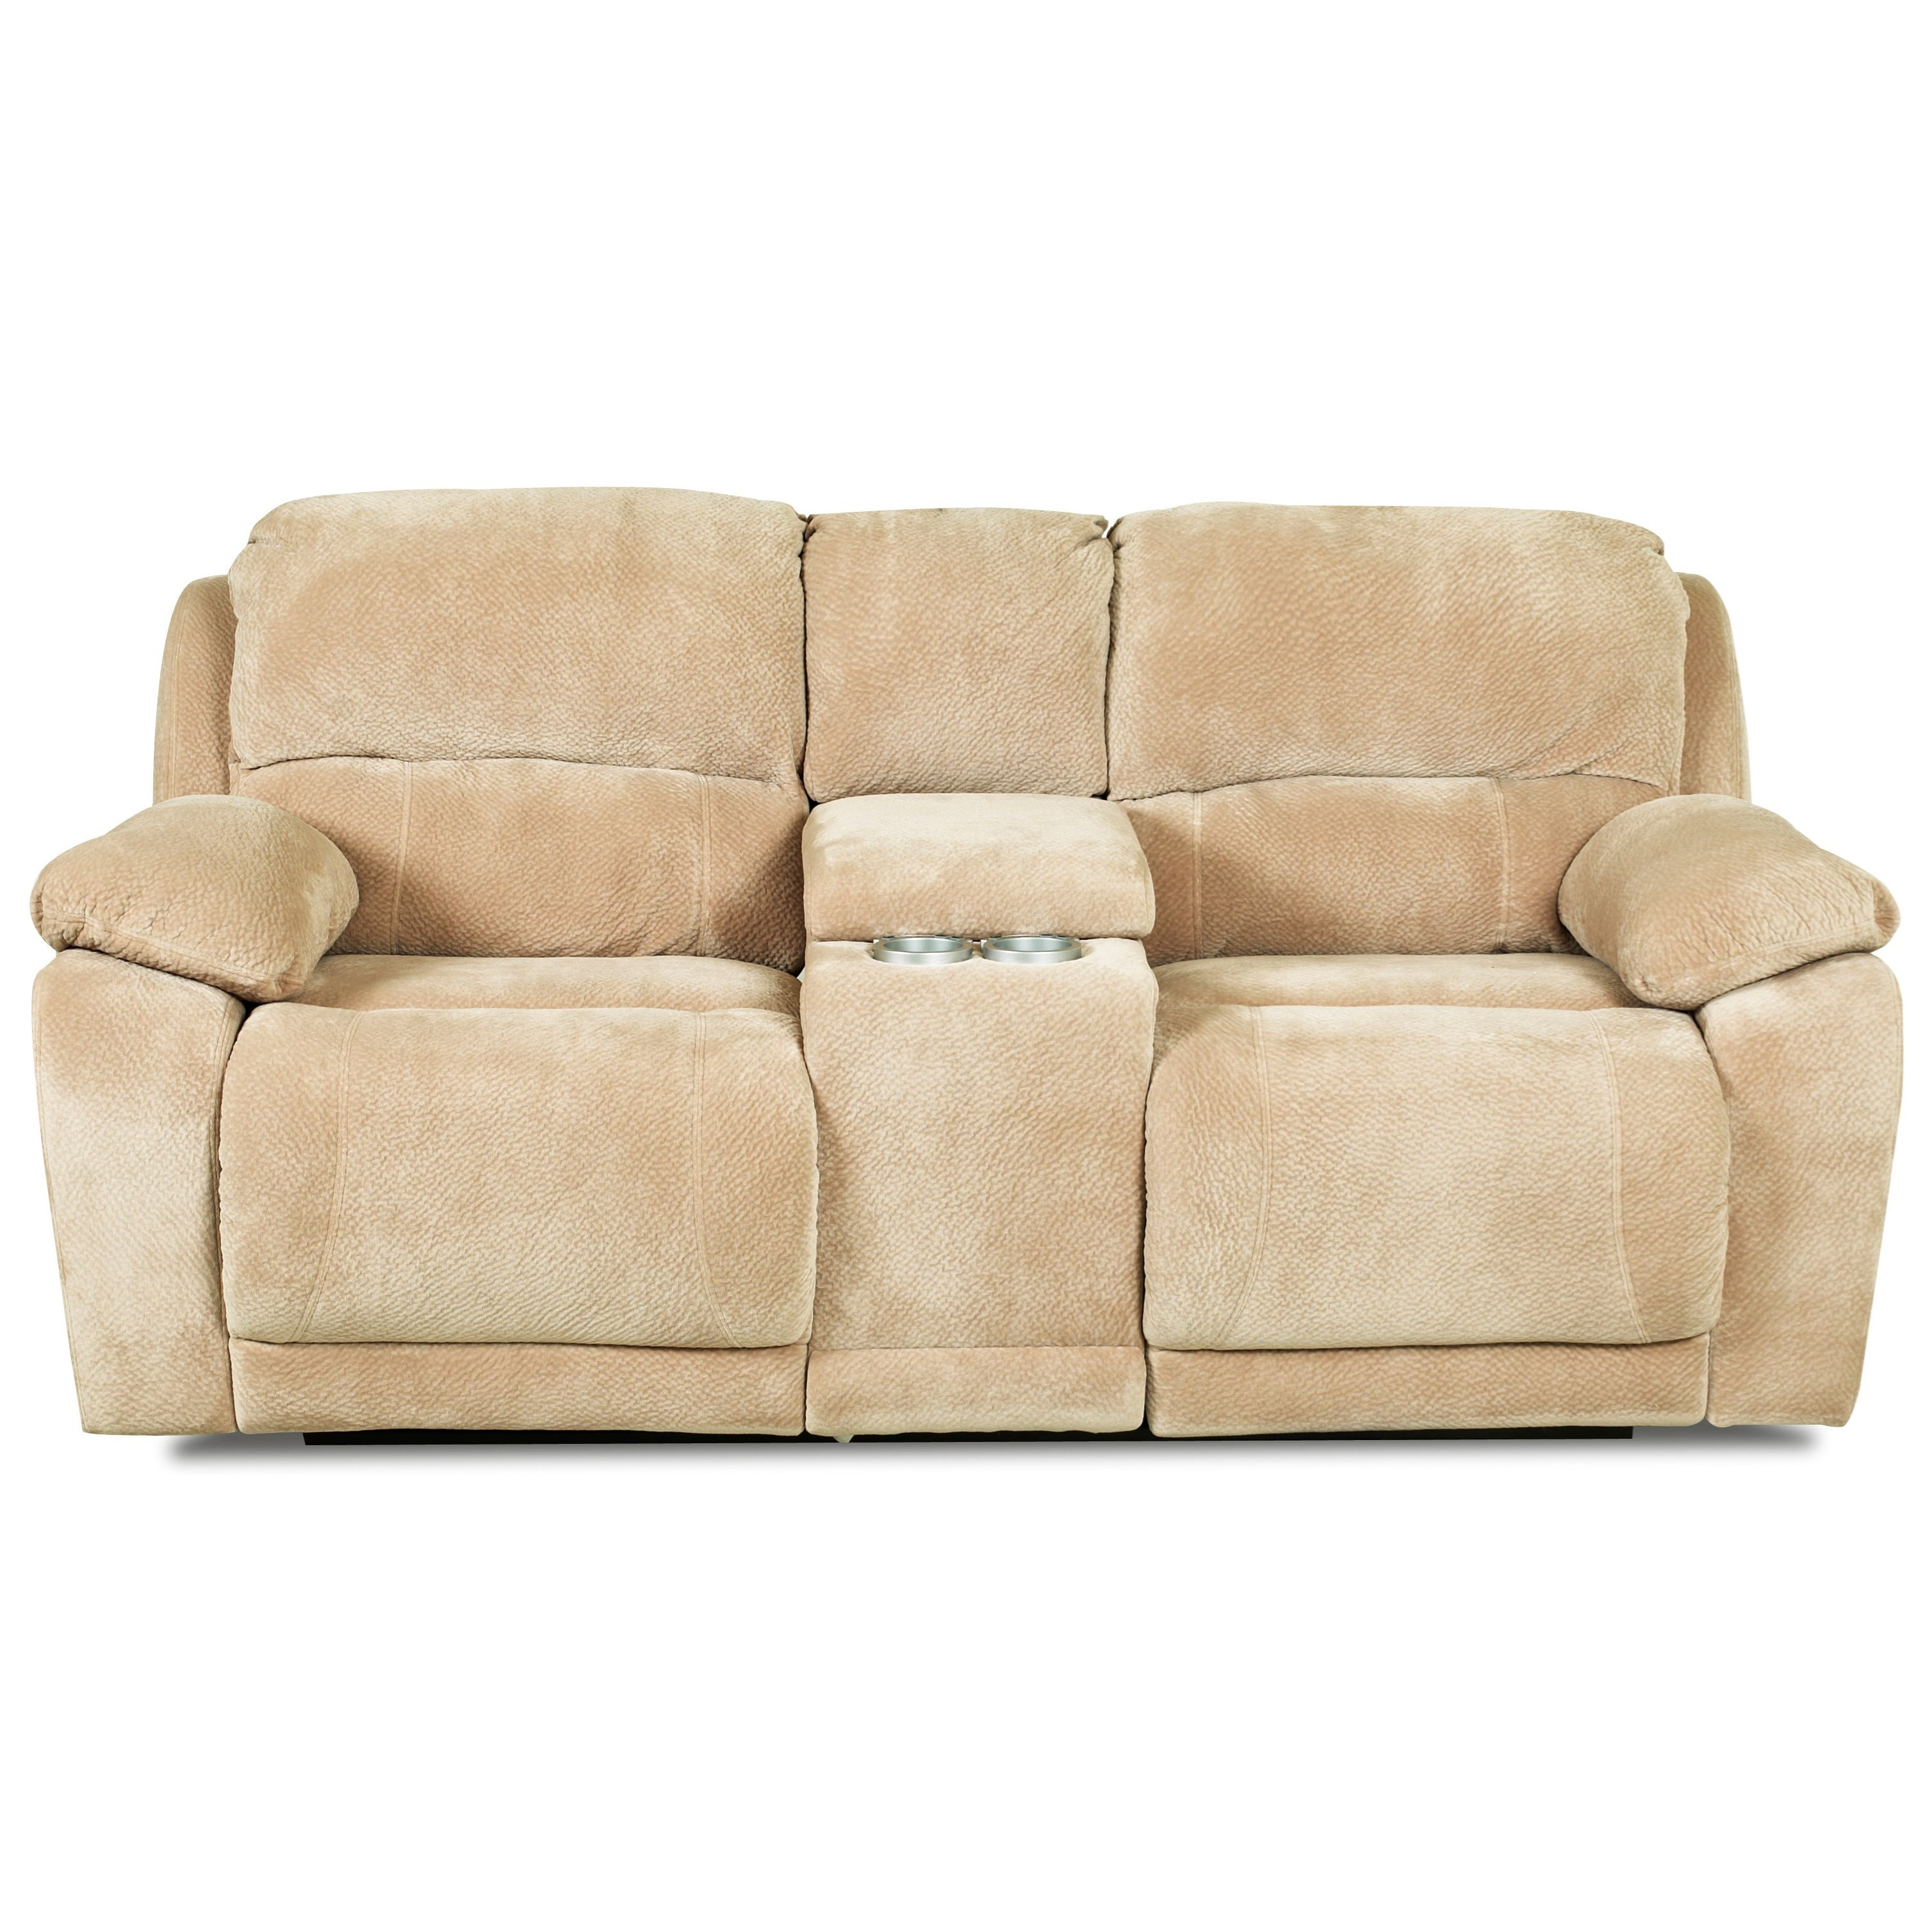 Dual Unit Reclining Loveseat with Storage Console